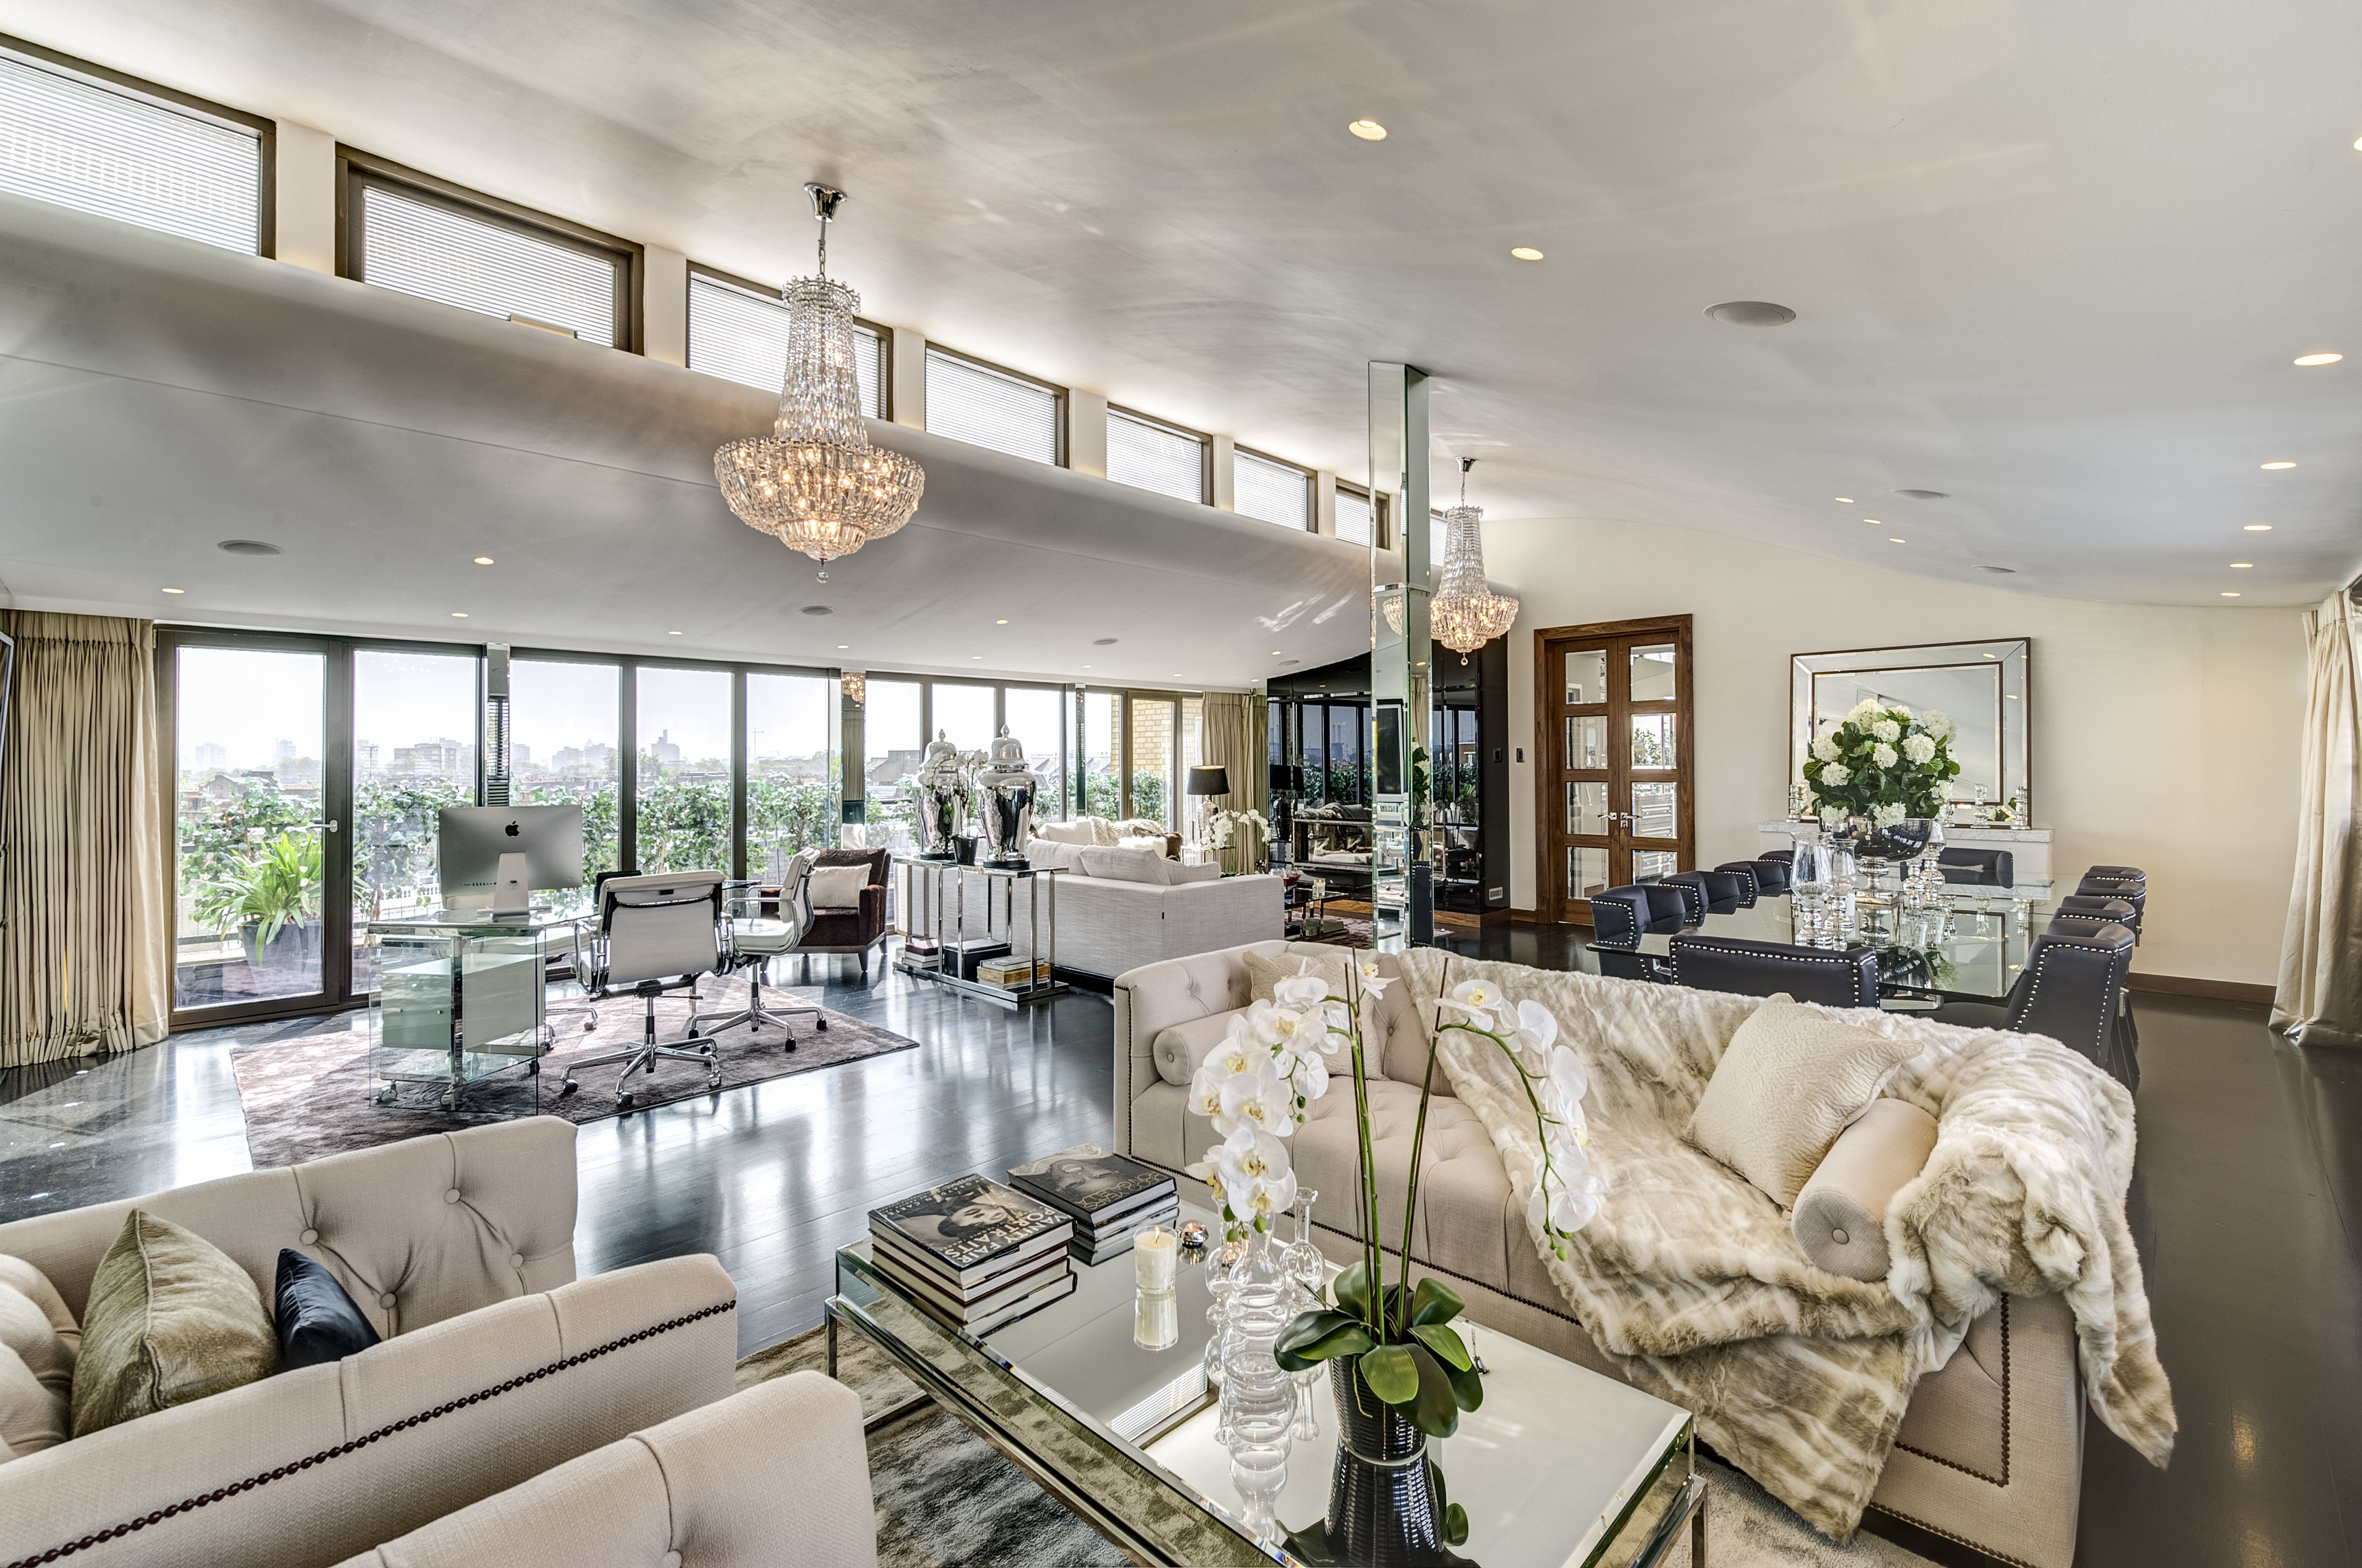 Huge Grant's former South Kensington penthouse is up for sale for £8.95 million — and you'd be hard pressed to find a more glamorous property - Country Life